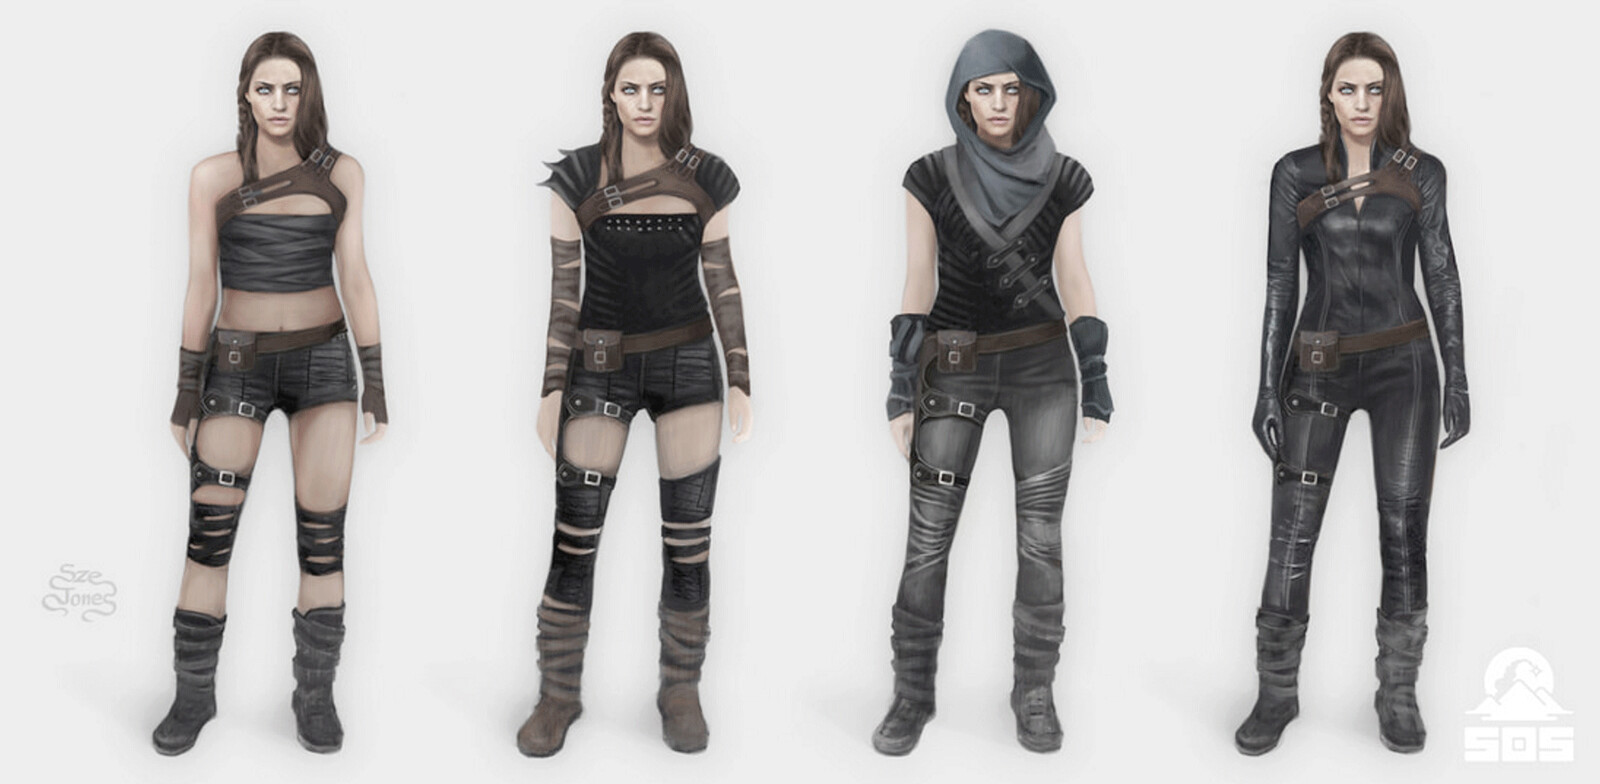 Character Outcast - Stealth Wardrobe Designs